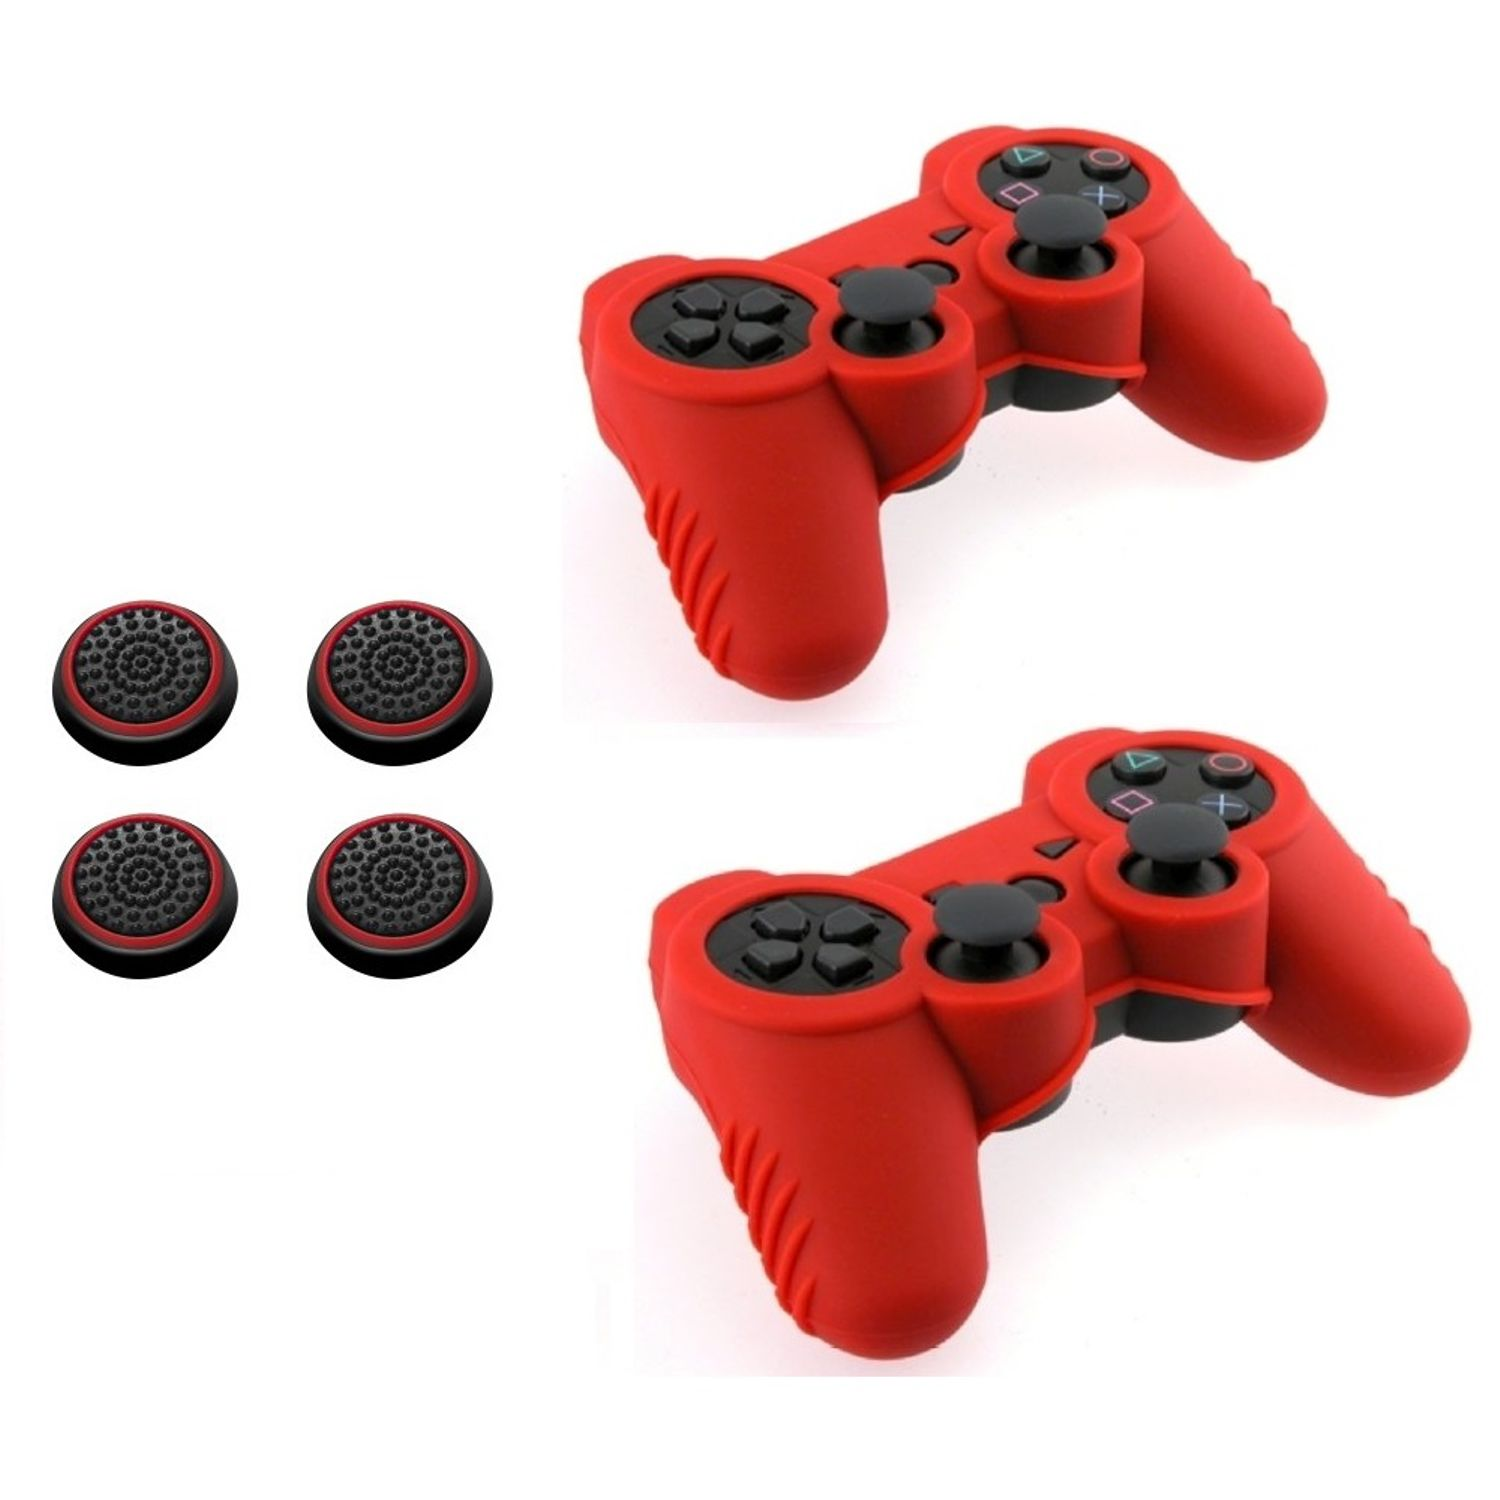 Insten Red Silicone Skin Case (+ 4 pcs Black/Red Analog Thumbstick Cap) for Sony PS3 Controller